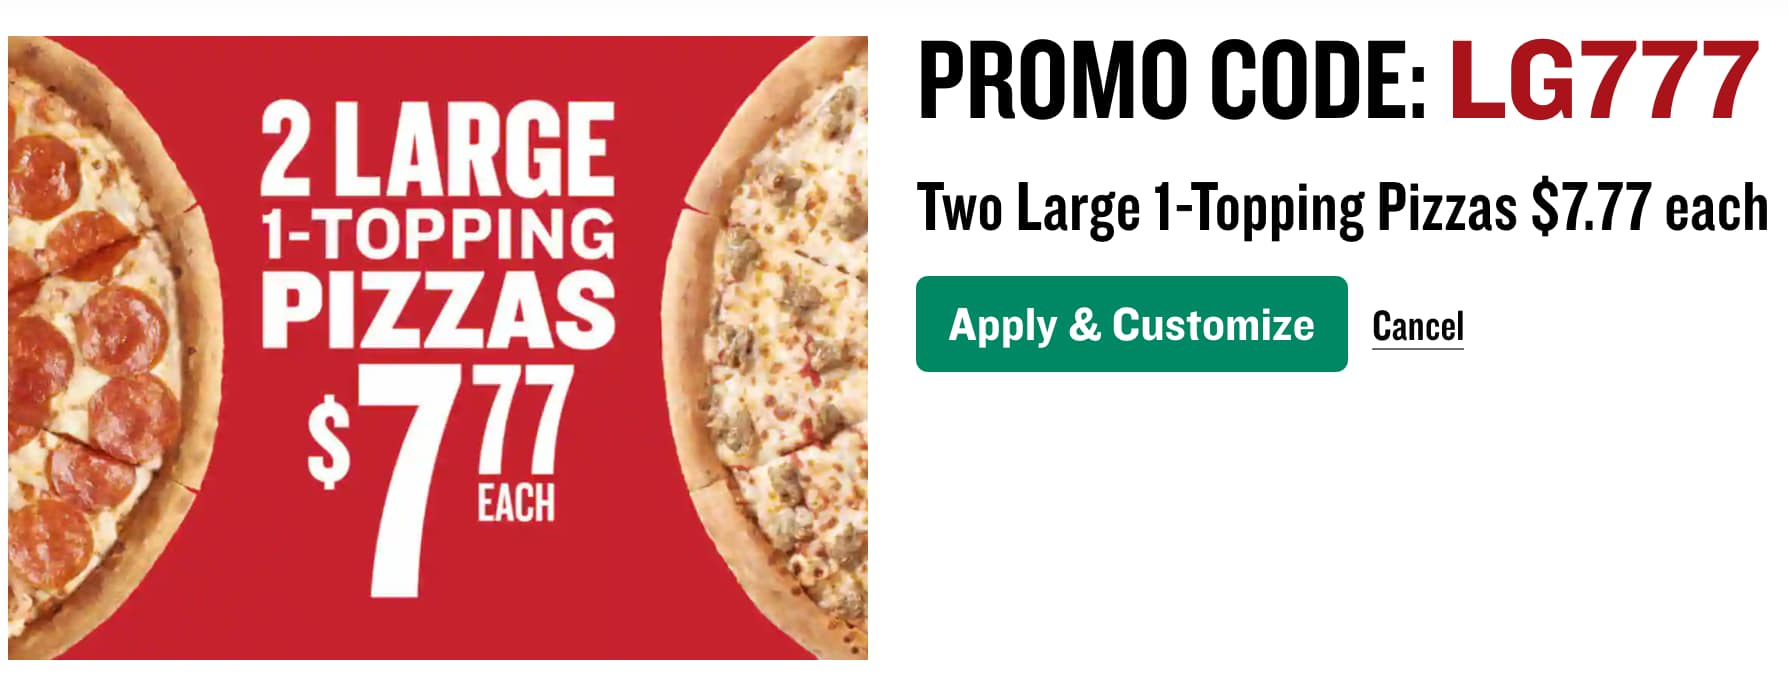 Papa Johns: Get 2 Large 1-topping pizzas for $7.77 each using code LG777 good thru 7/29